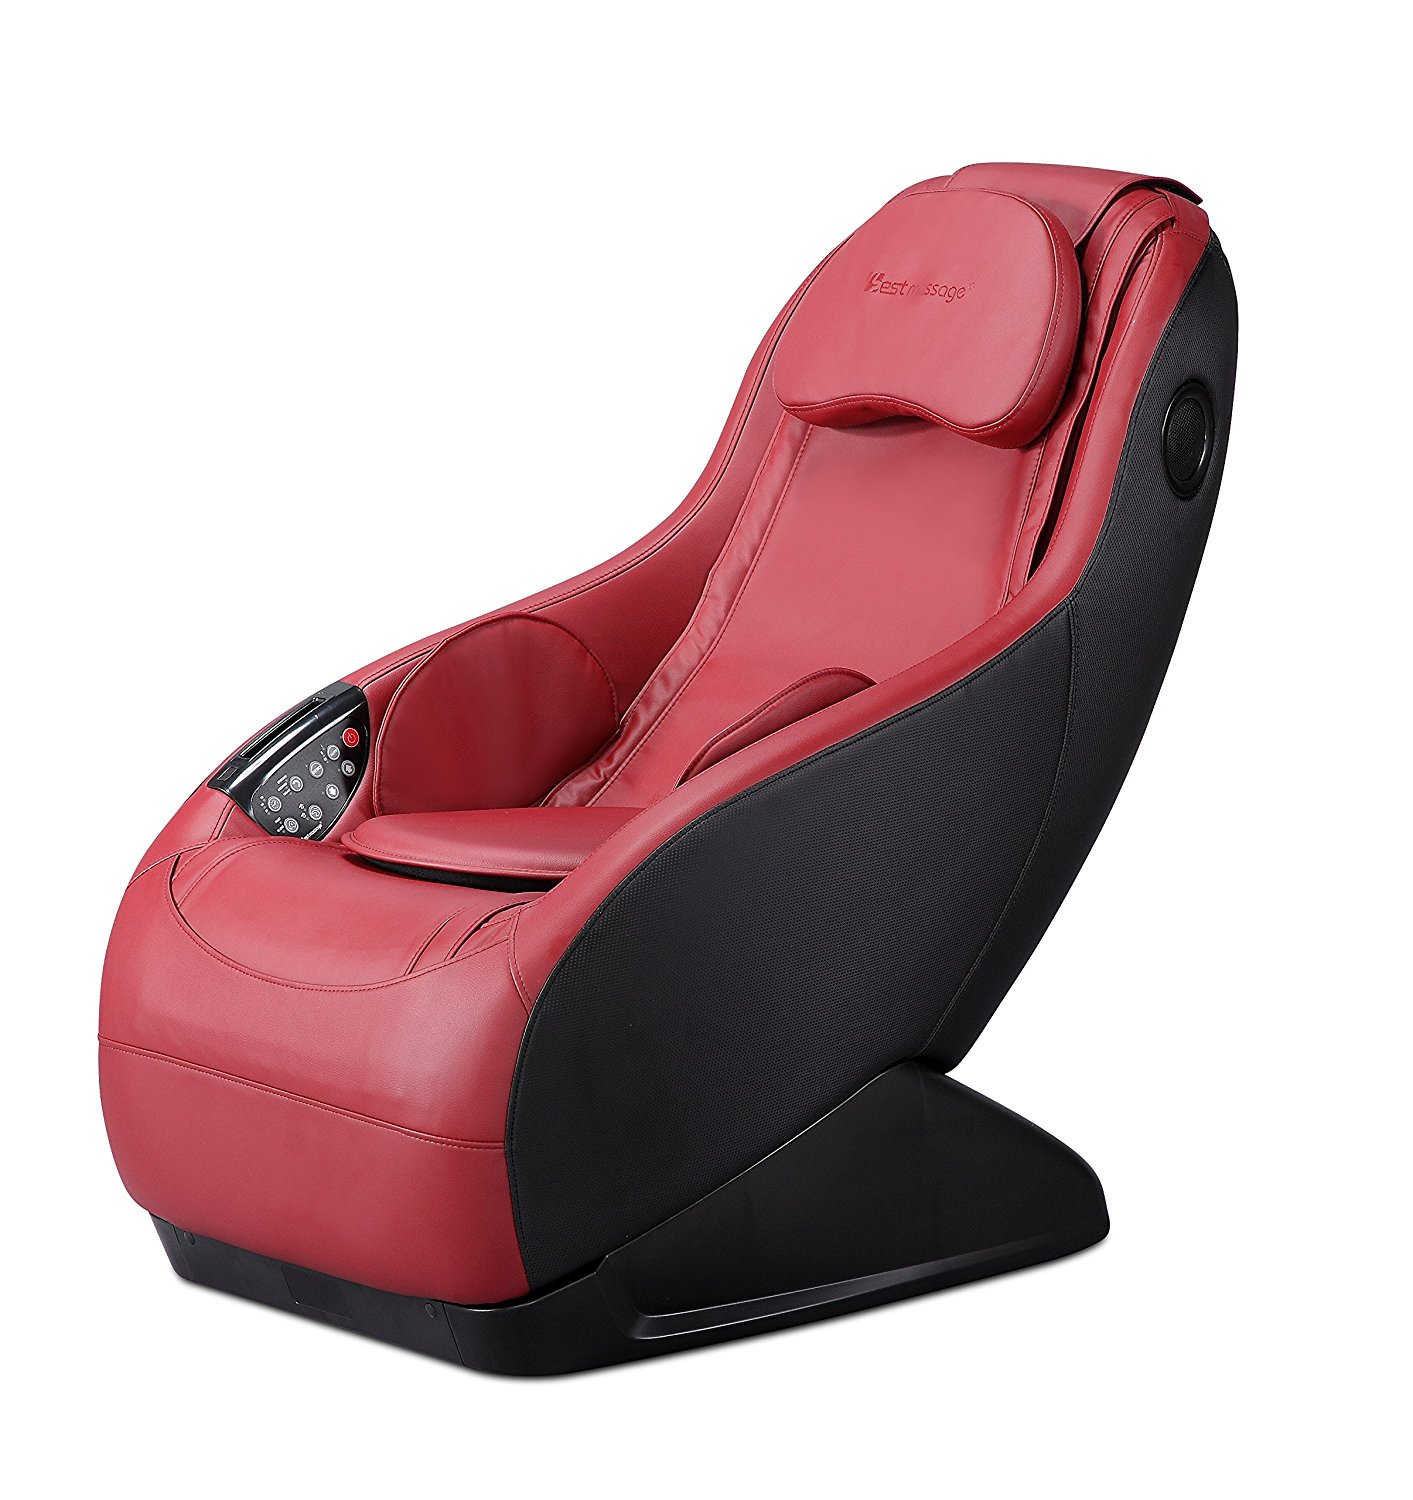 Bestmassage Full Body Gaming Shiatsu Massage Chair Recliner